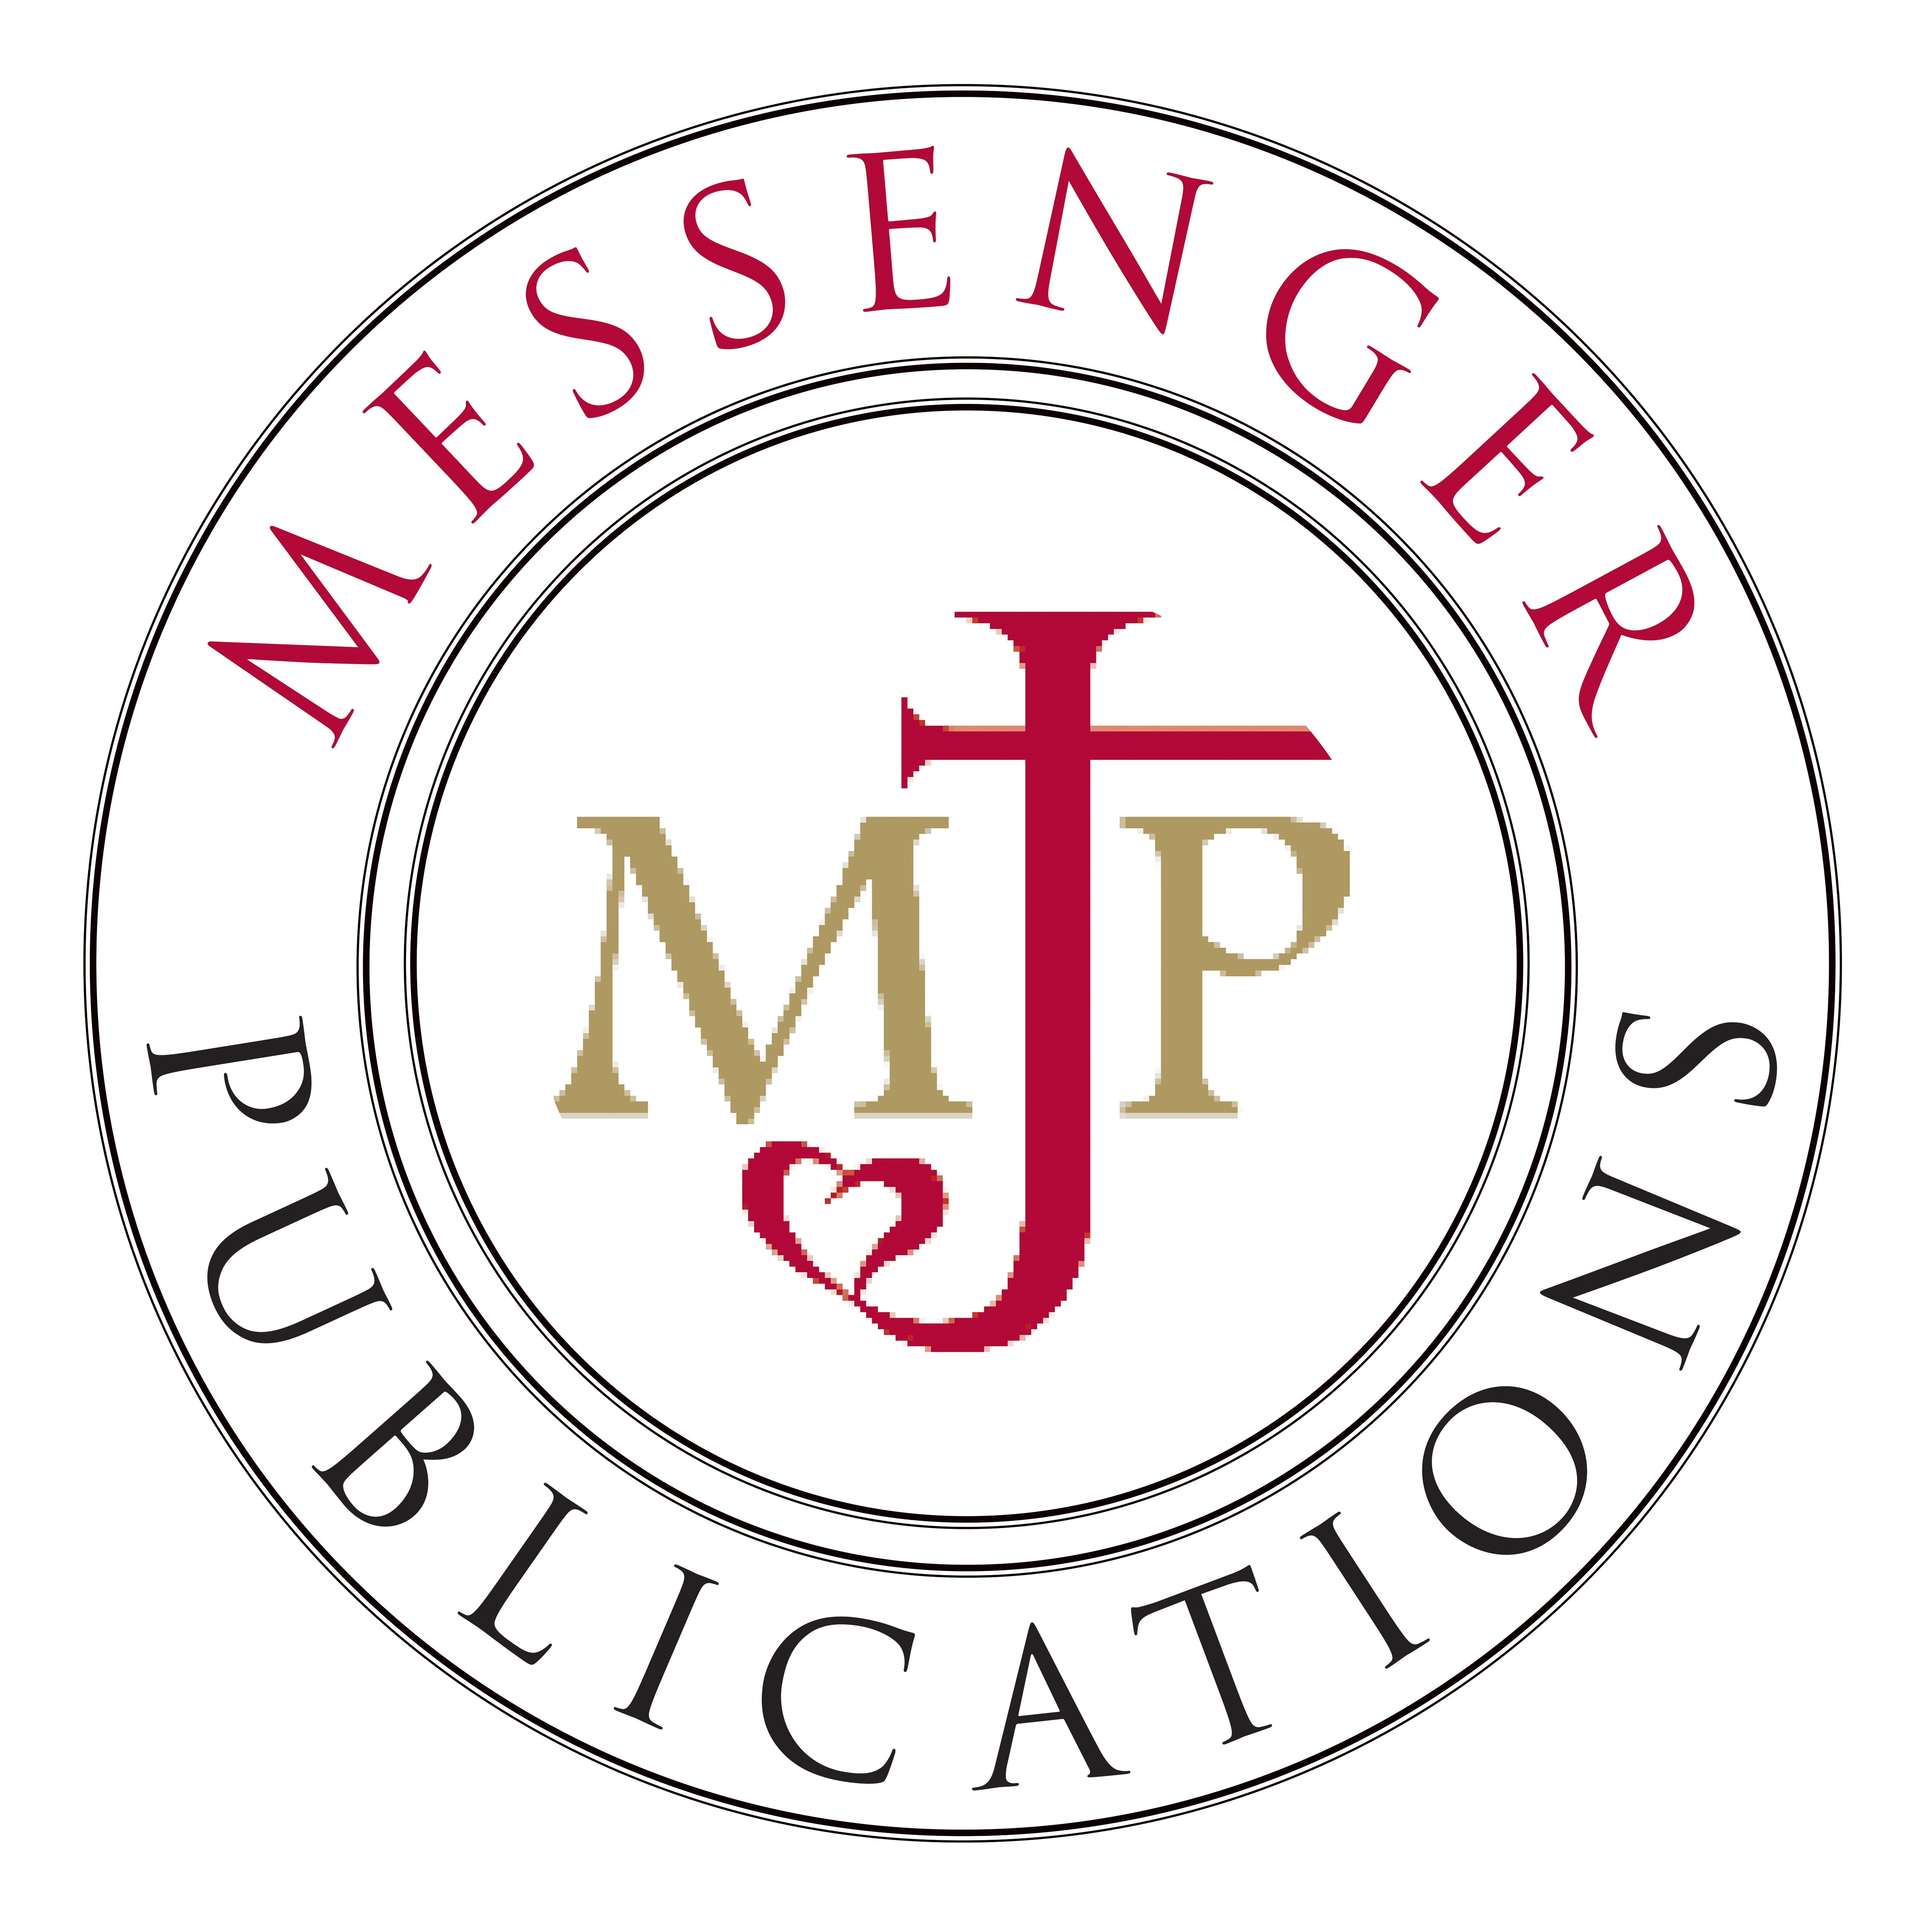 Messenger Publications